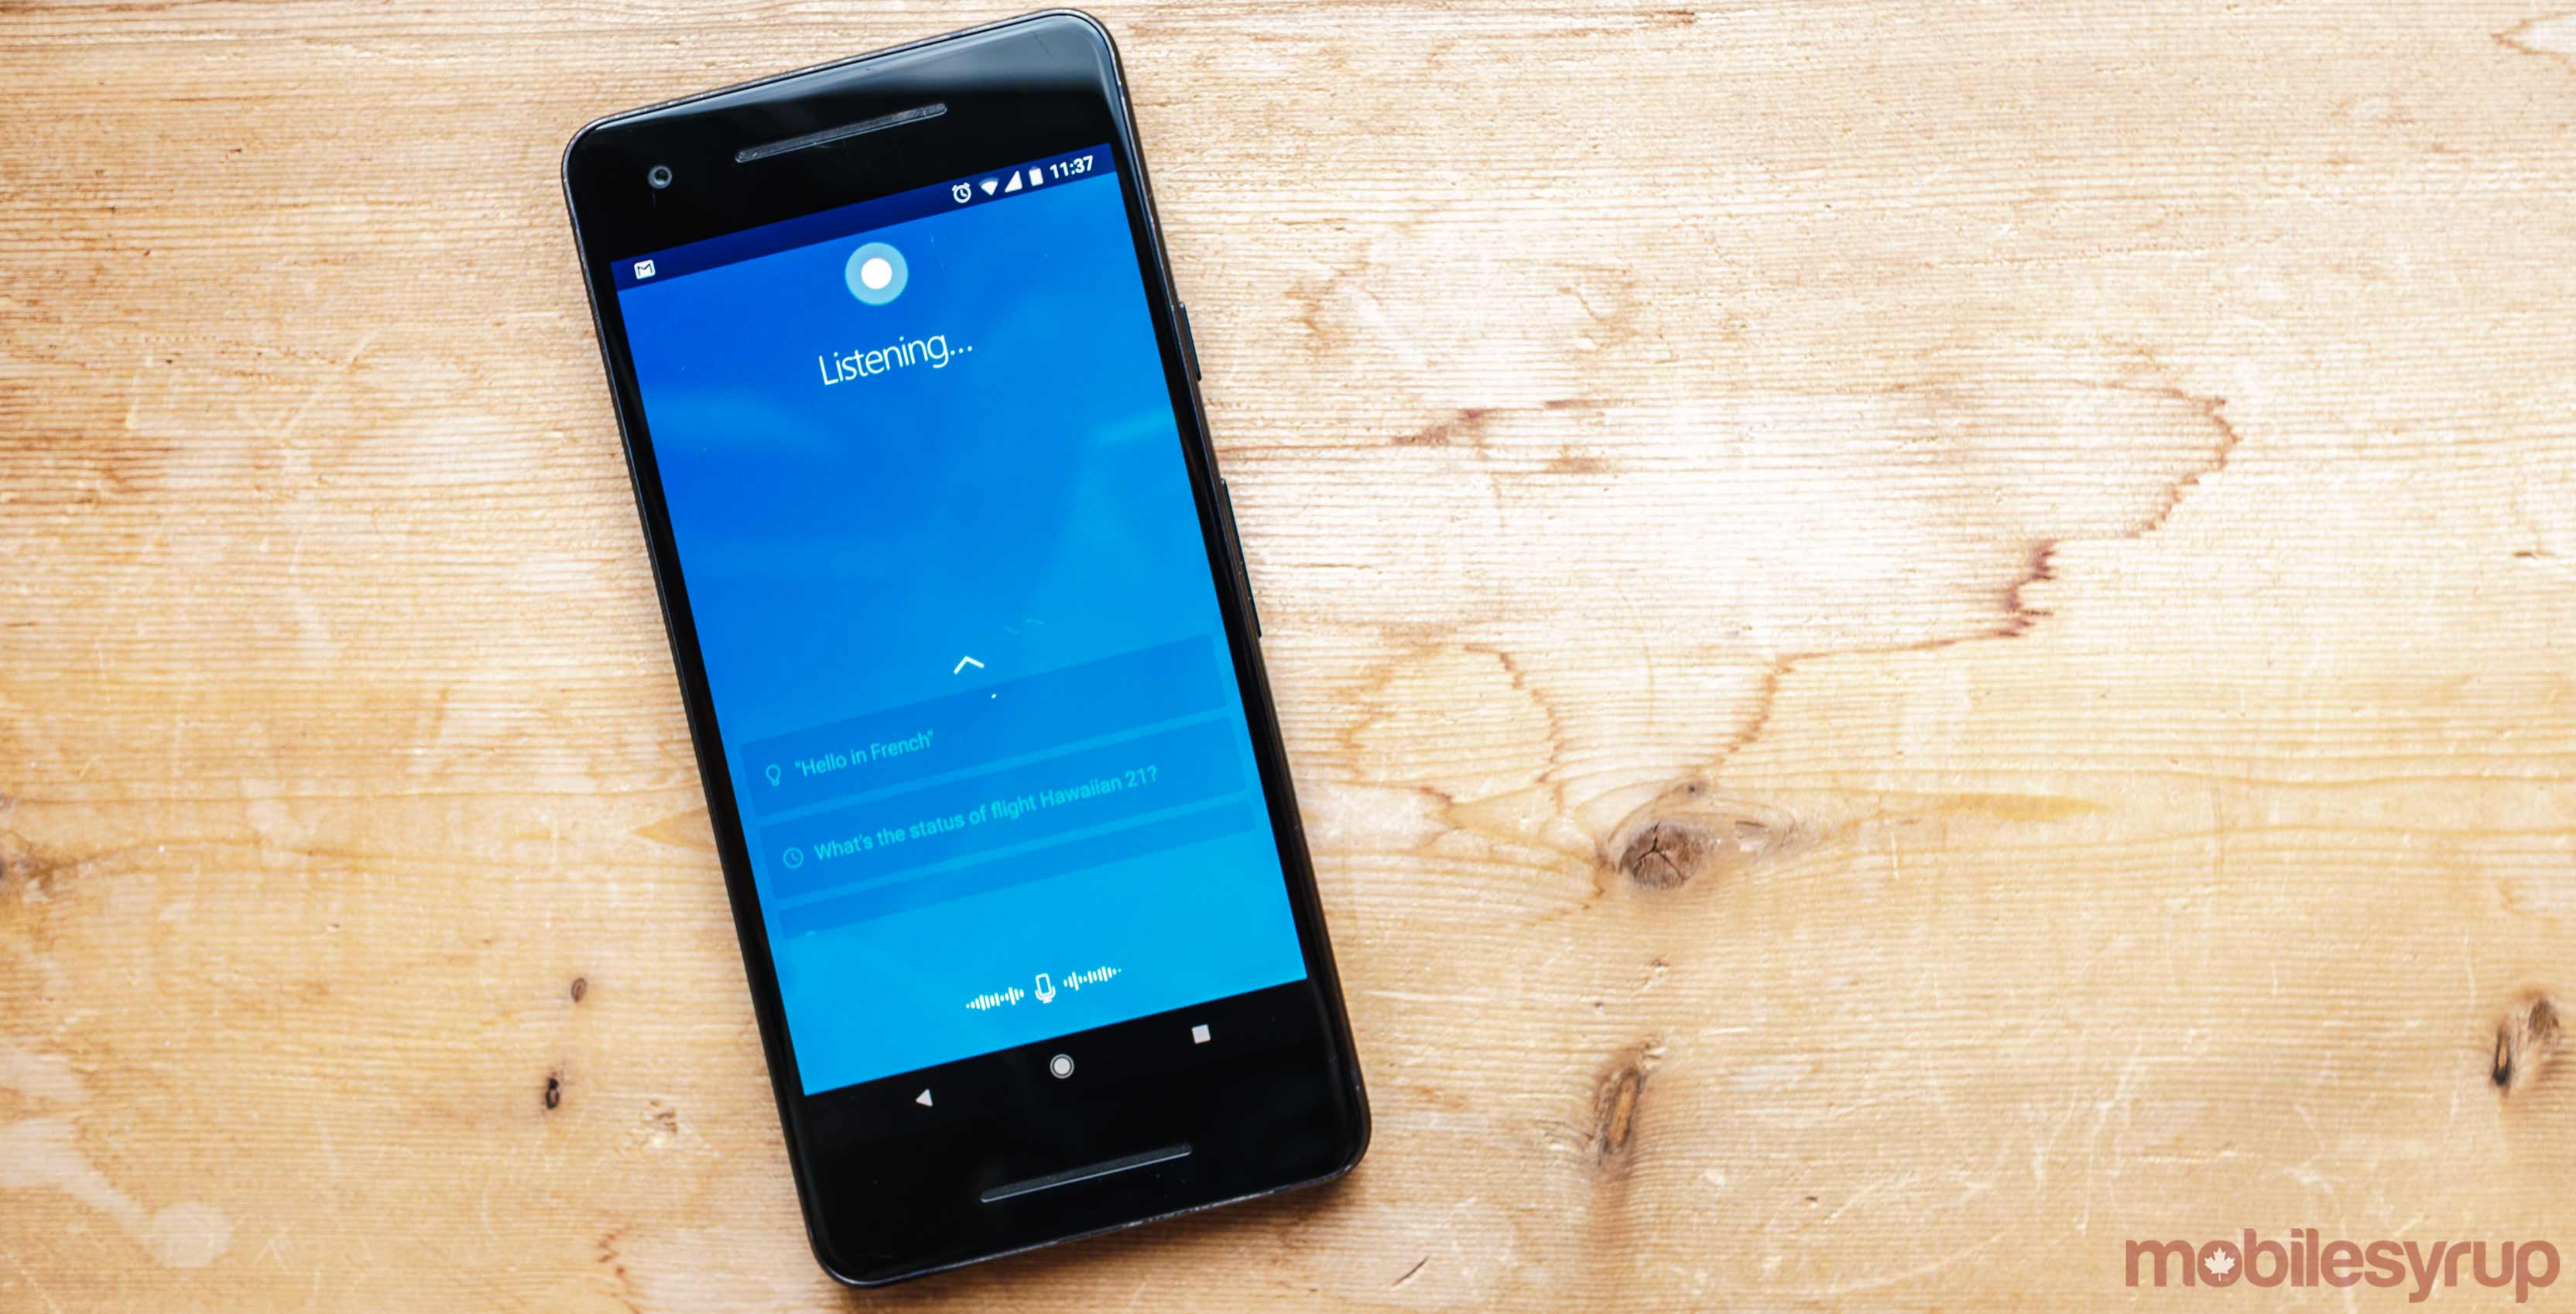 Cortana running on an Android smartphone